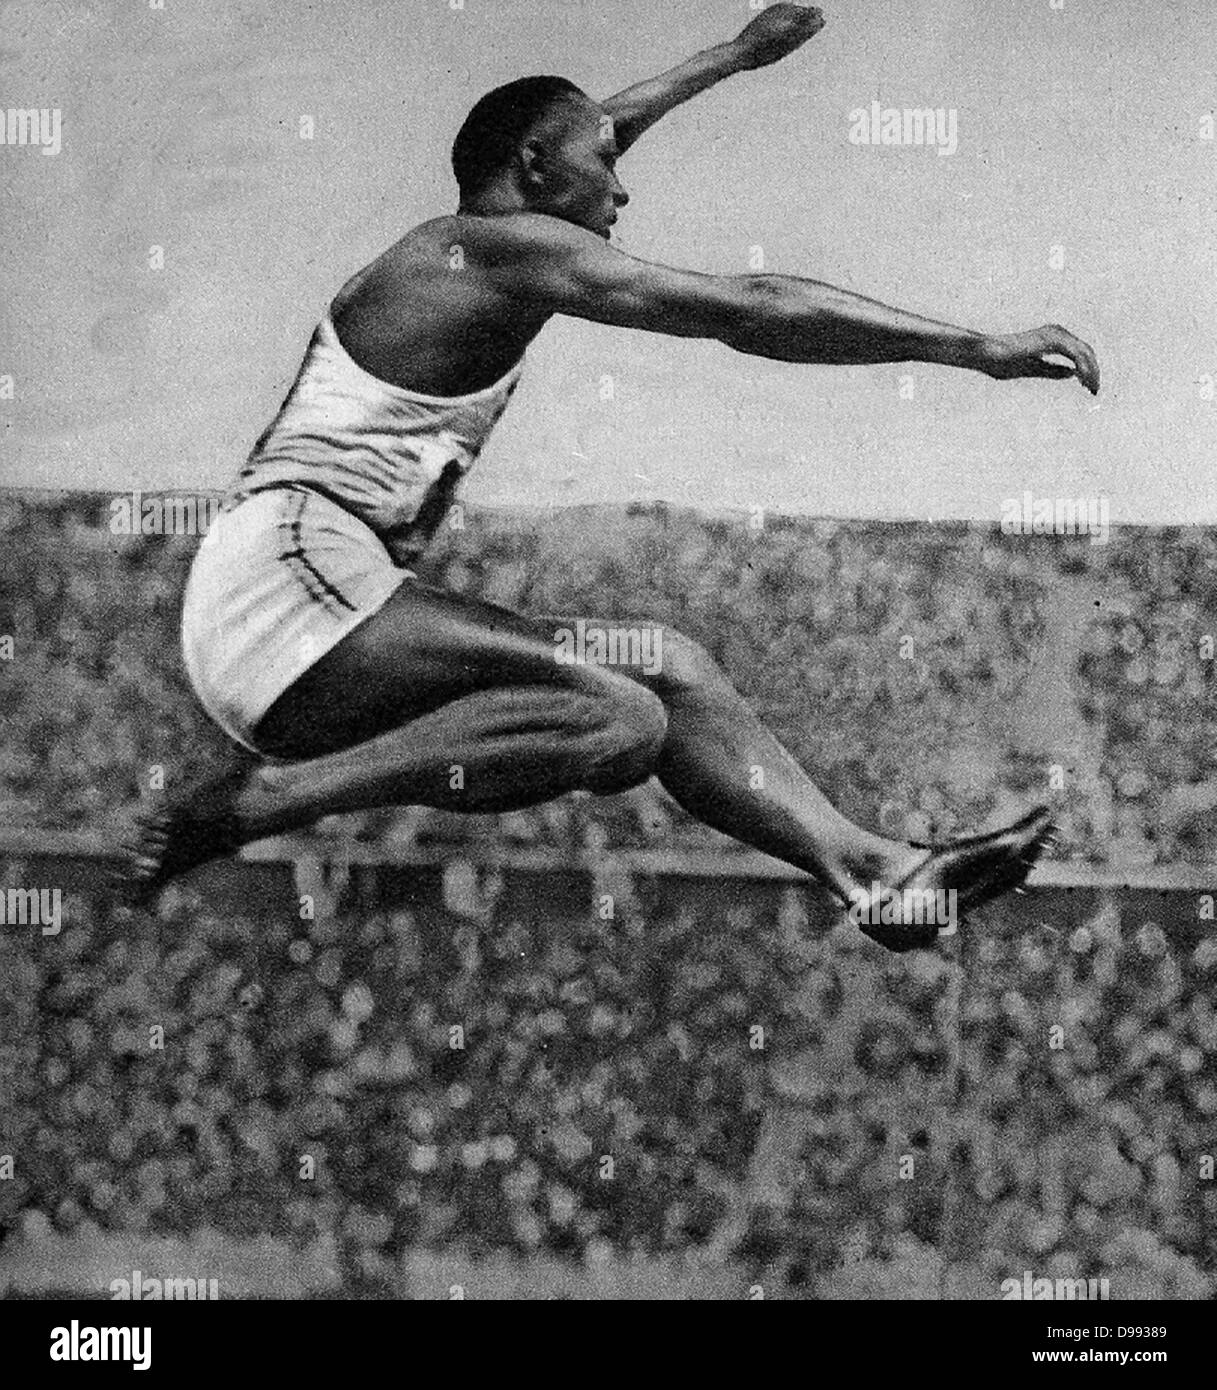 Jesse Owens (1913 – 1980) American track and field athlete. He participated in the 1936 Summer Olympics in Berlin, - Stock Image